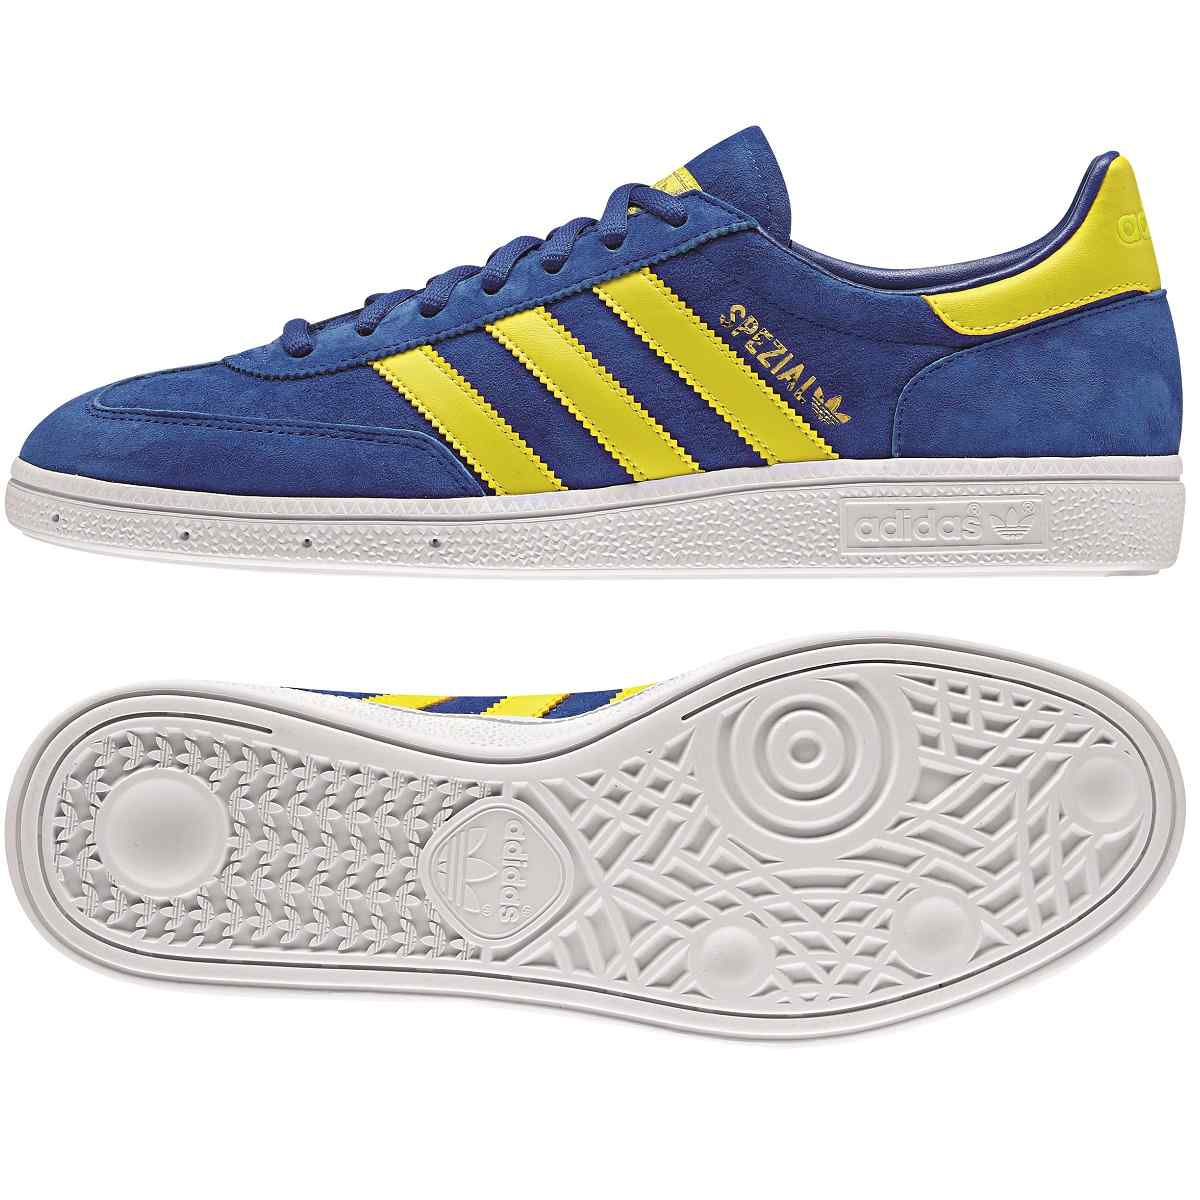 adidas originals spezial schuhe sneaker turnschuhe damen herren diverse farben ebay. Black Bedroom Furniture Sets. Home Design Ideas